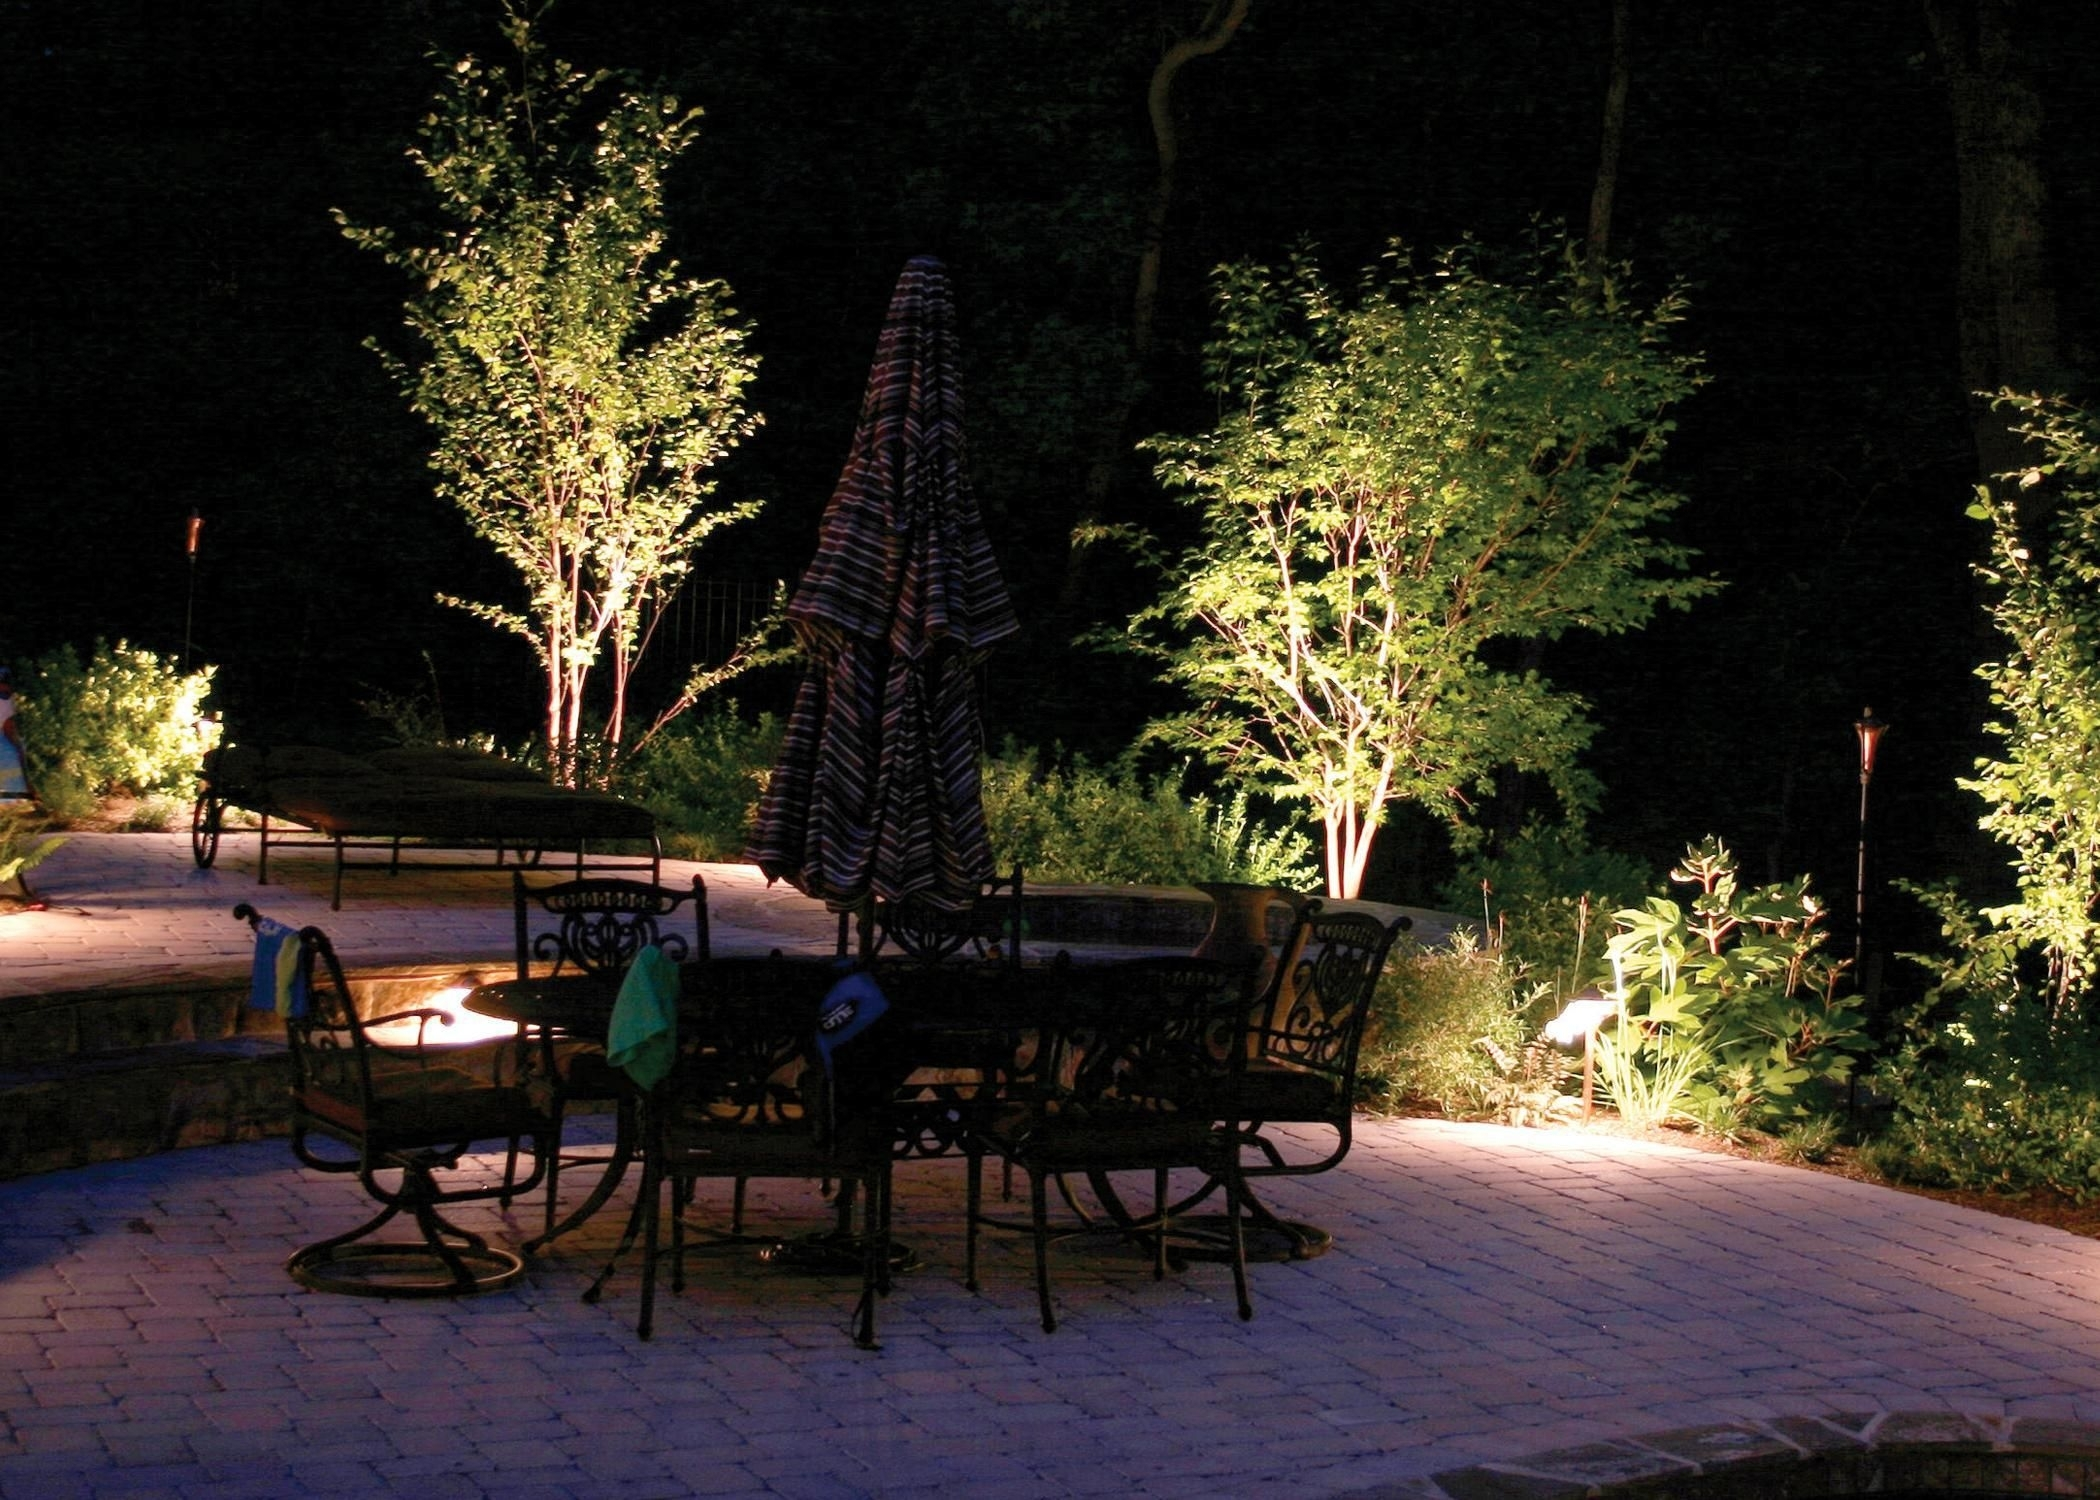 Diy Outdoor Lanterns Lighting For Ranch Style House Landscape Ideas within Diy Outdoor Lanterns (Image 12 of 20)